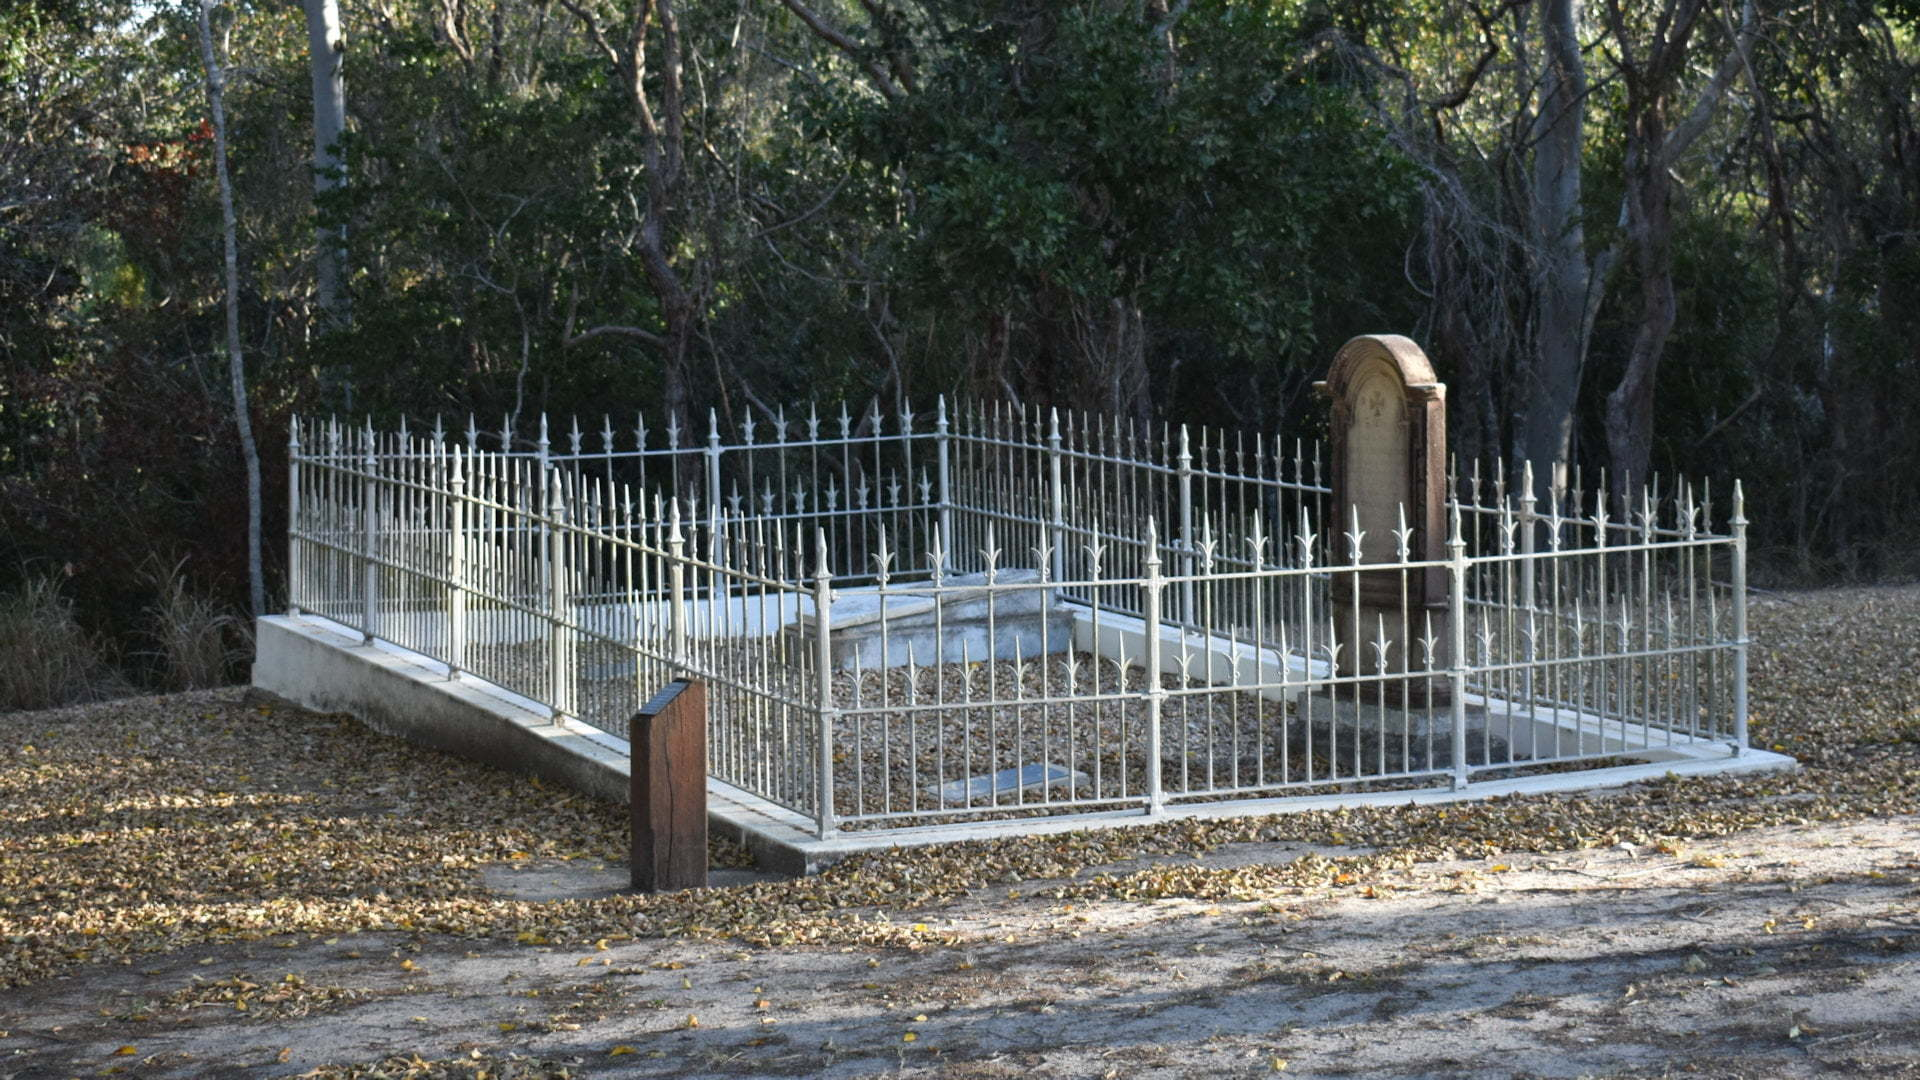 Small grave site surrounded by cast iron fencing, the McAdam graves at the Pioneer Graves of the original Maryborough site